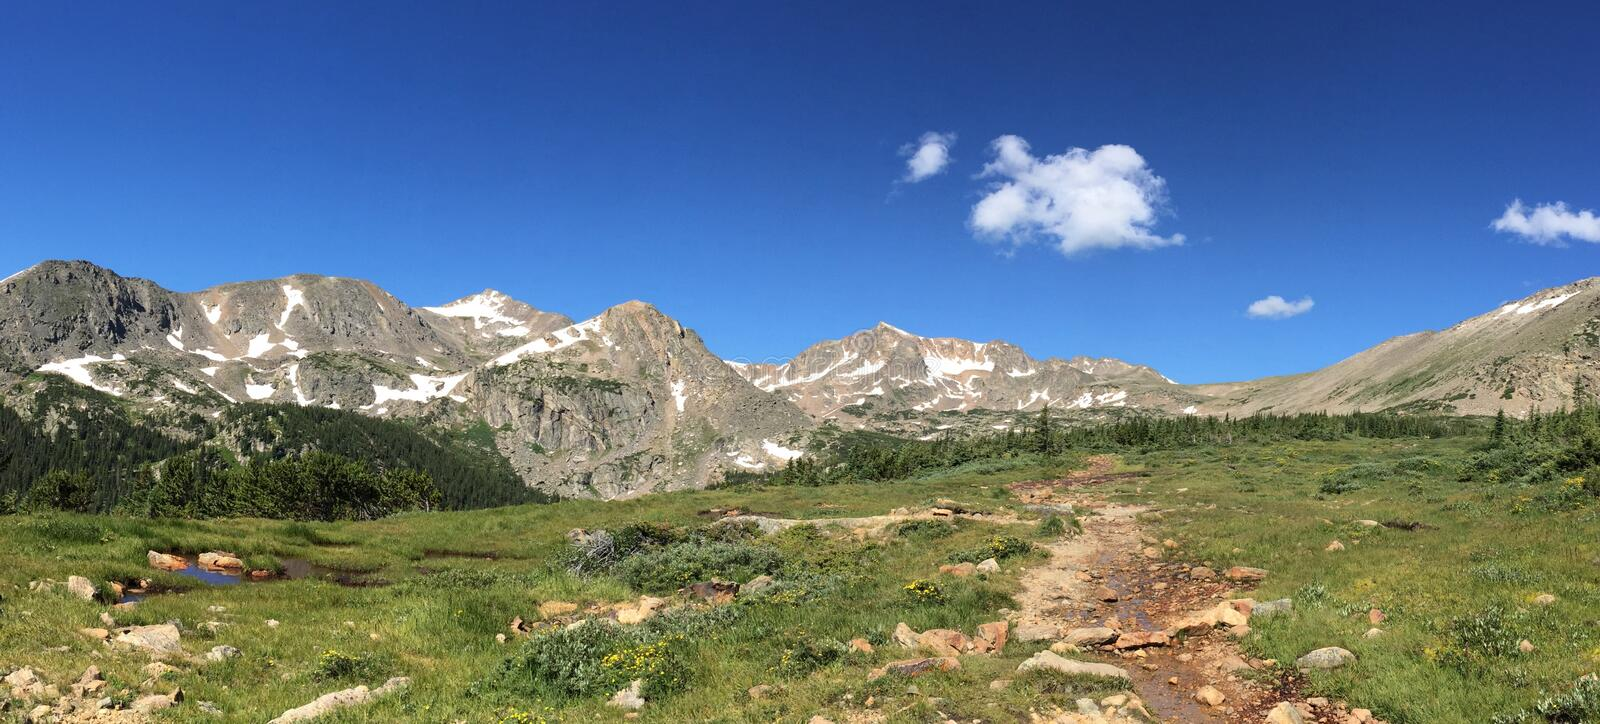 Alpine hiking trail in Colorado mountains royalty free stock images